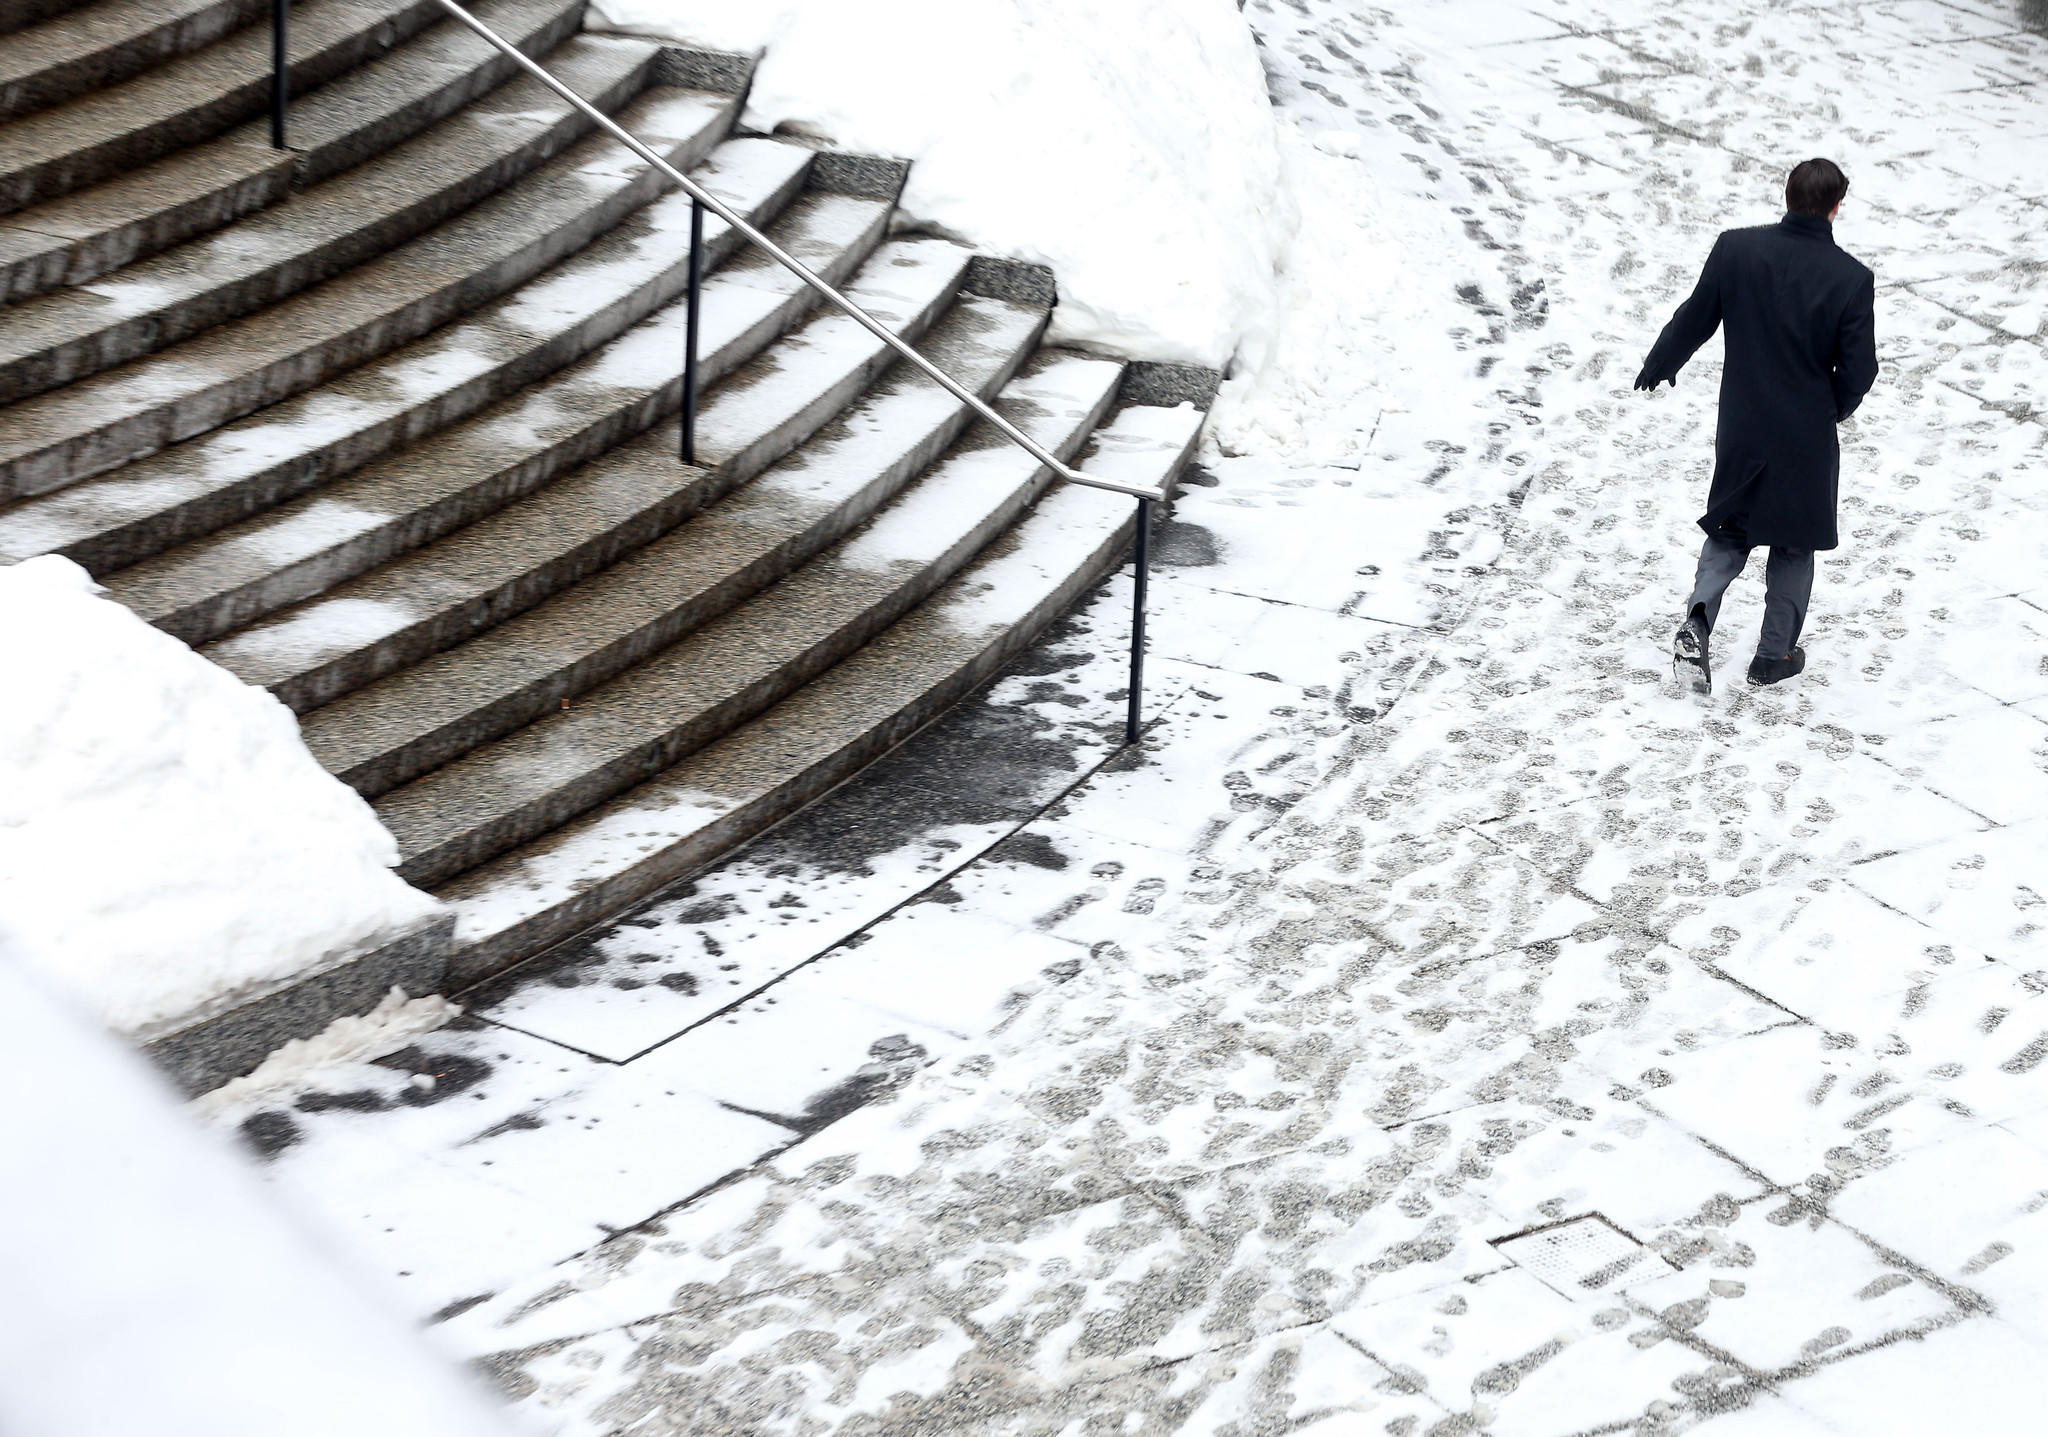 A pedestrians passes through the plaza in front of the John Hancock building after a brief snowstorm.